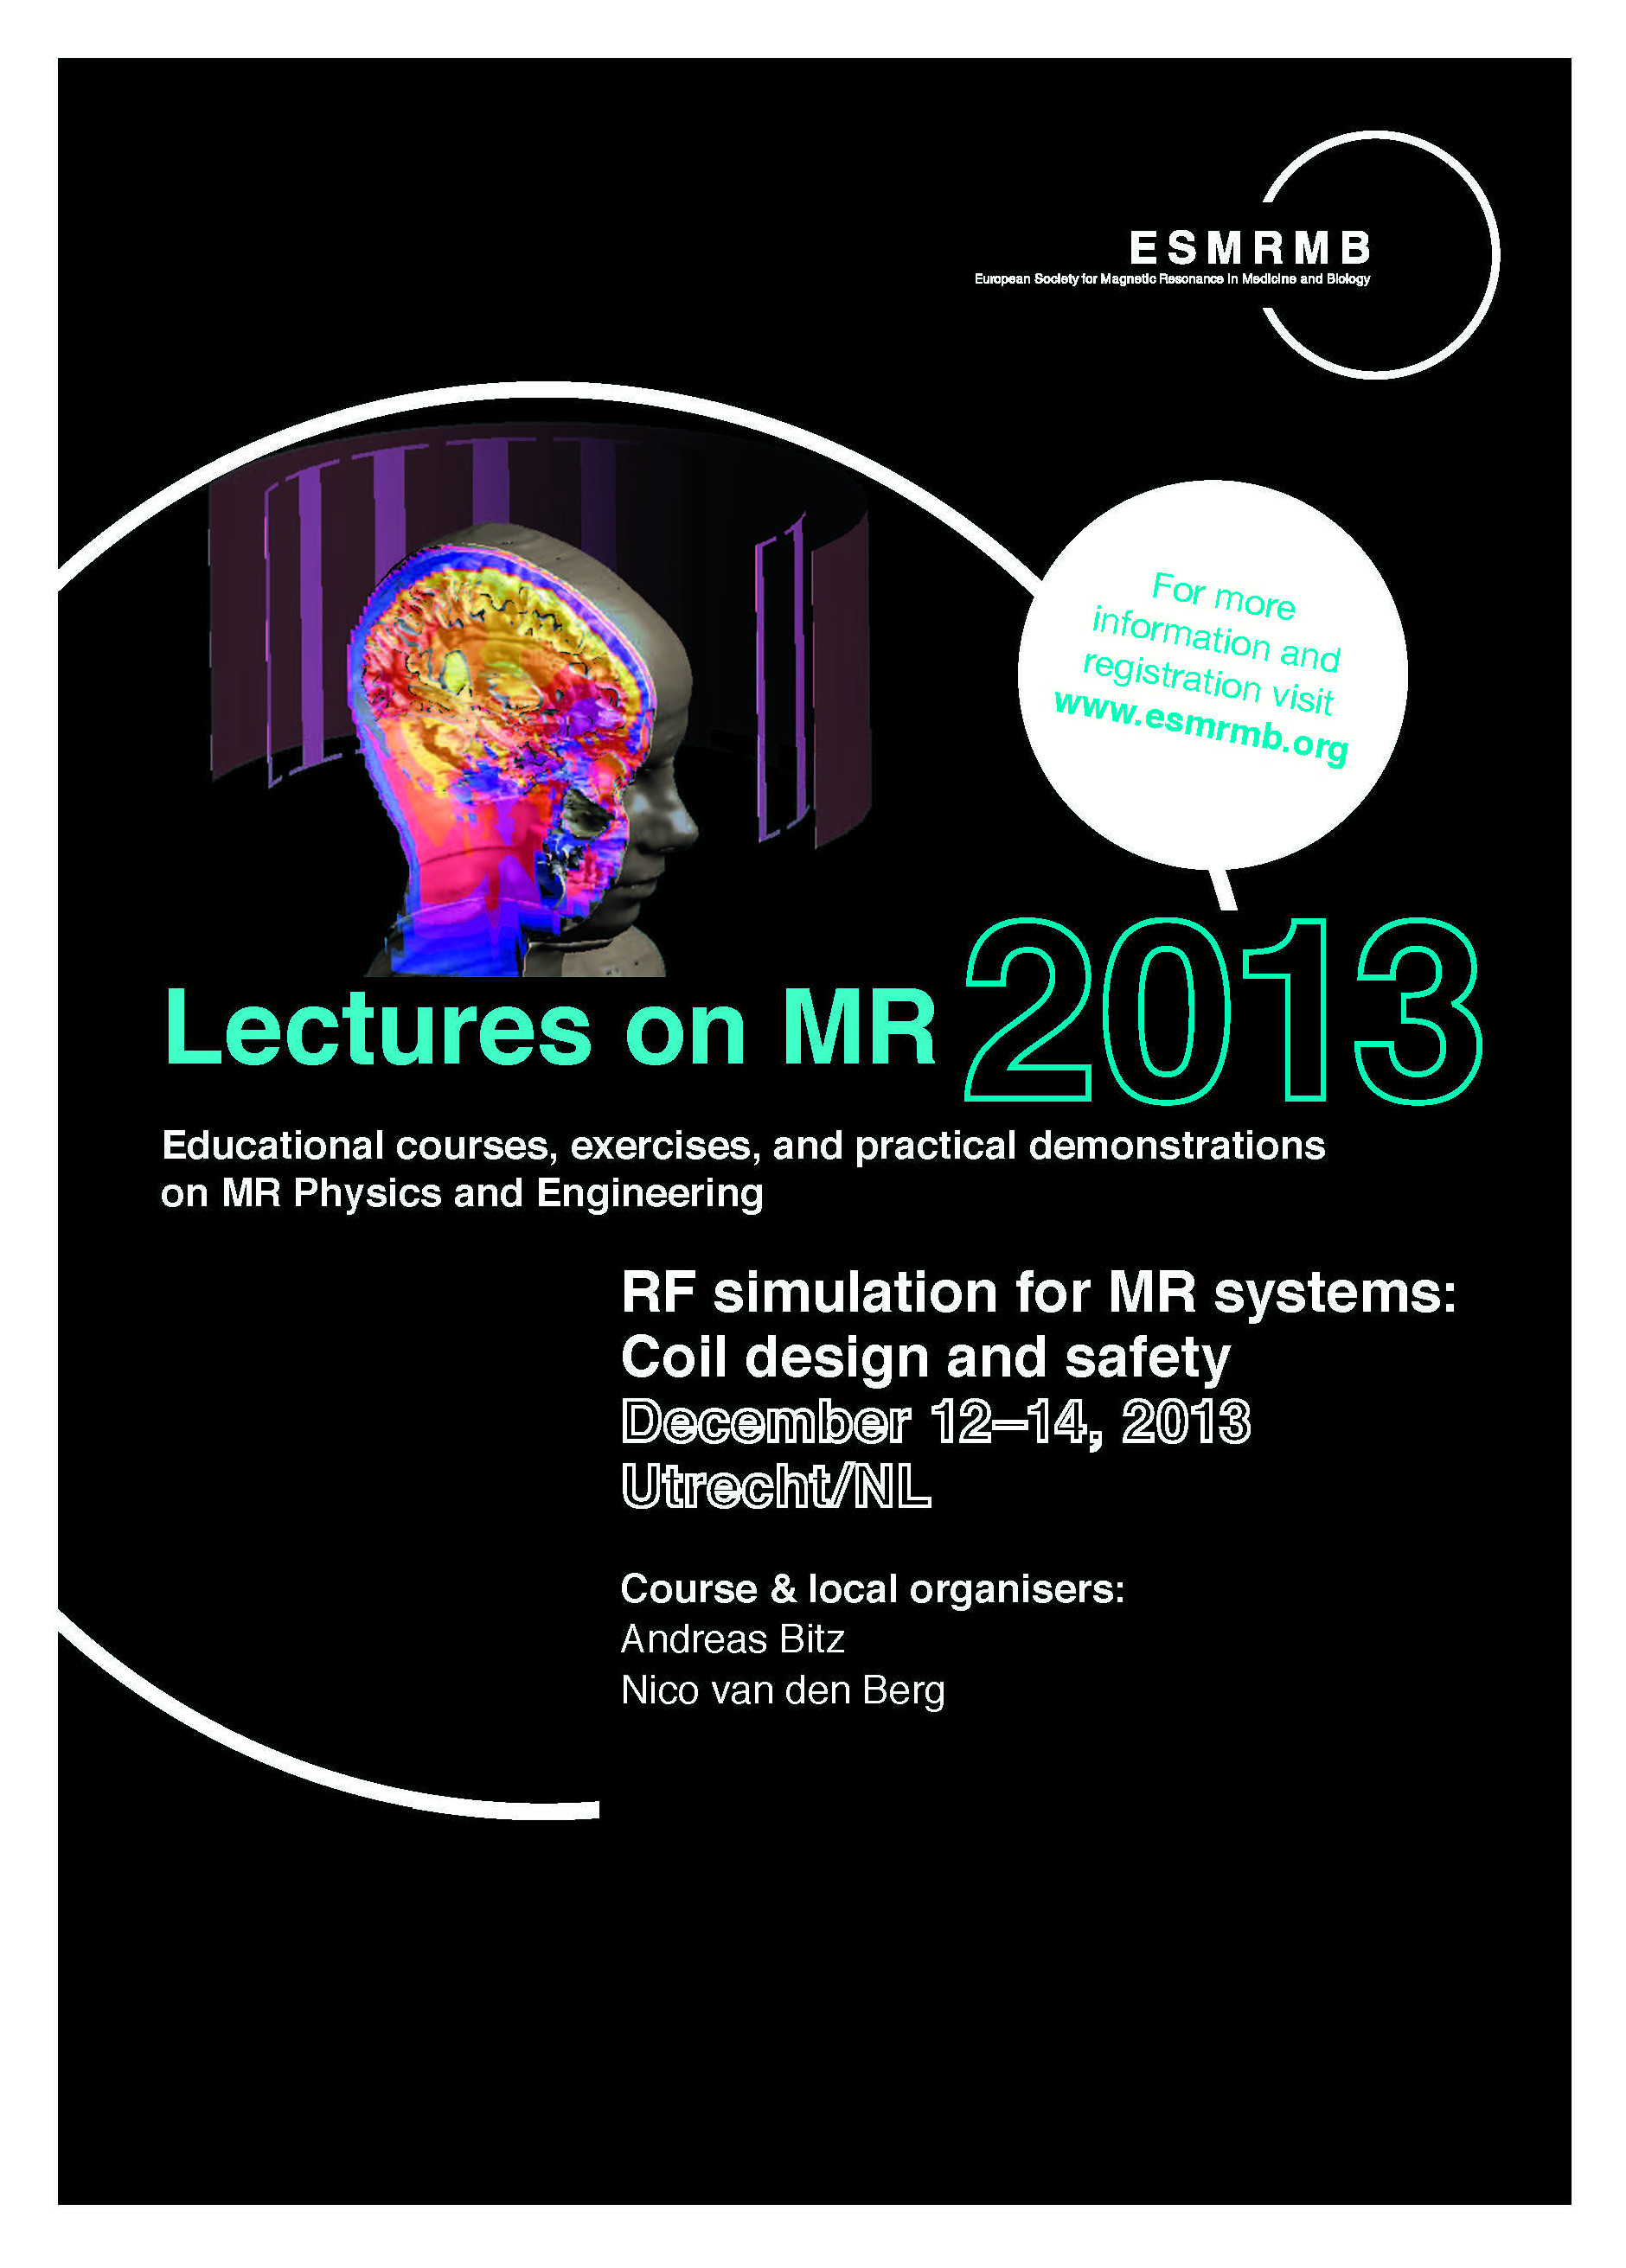 thumb ESMRMB lecture on RF simulation